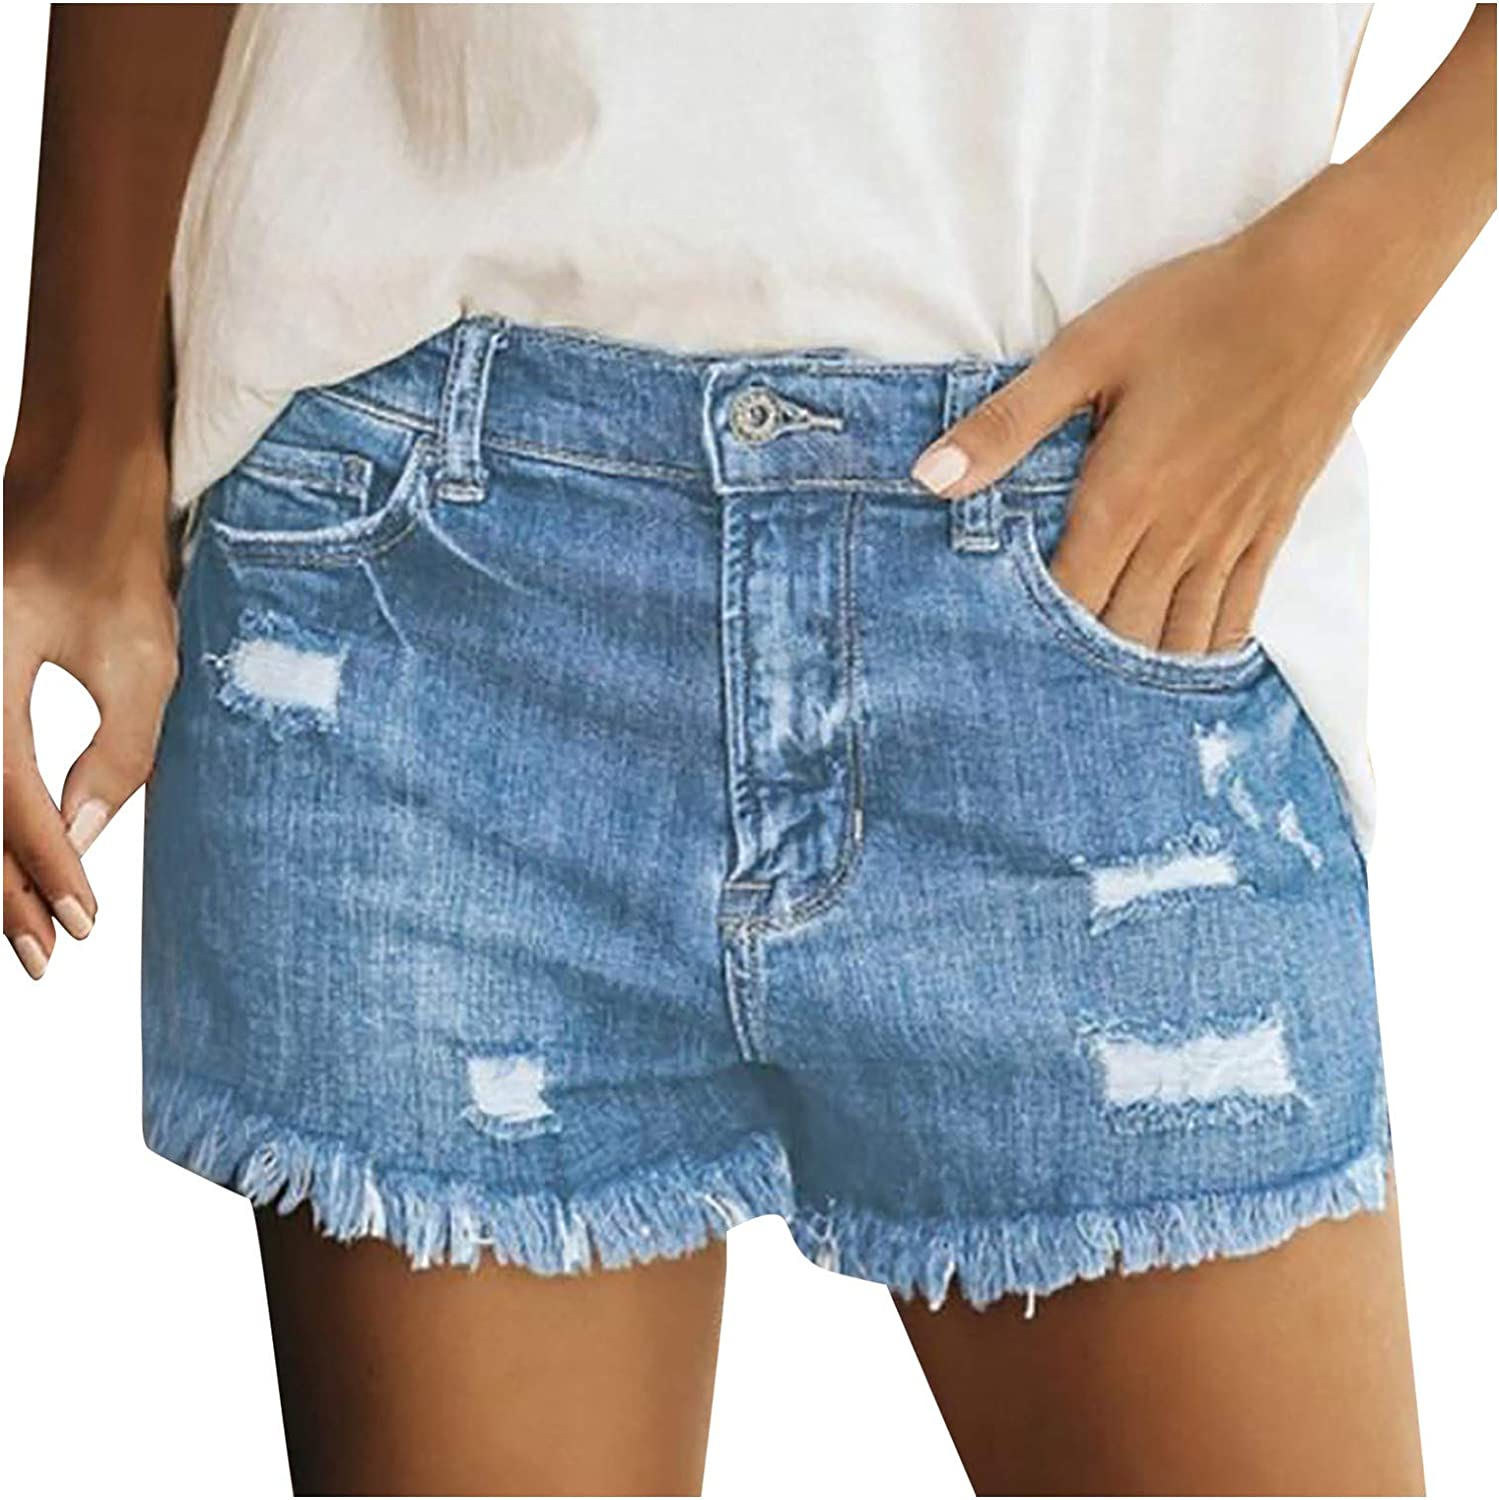 Denim Shorts for Women,Shorts for Women Jean Shorts Stretchy Frayed Raw Hem Hot Short Jeans with Pockets